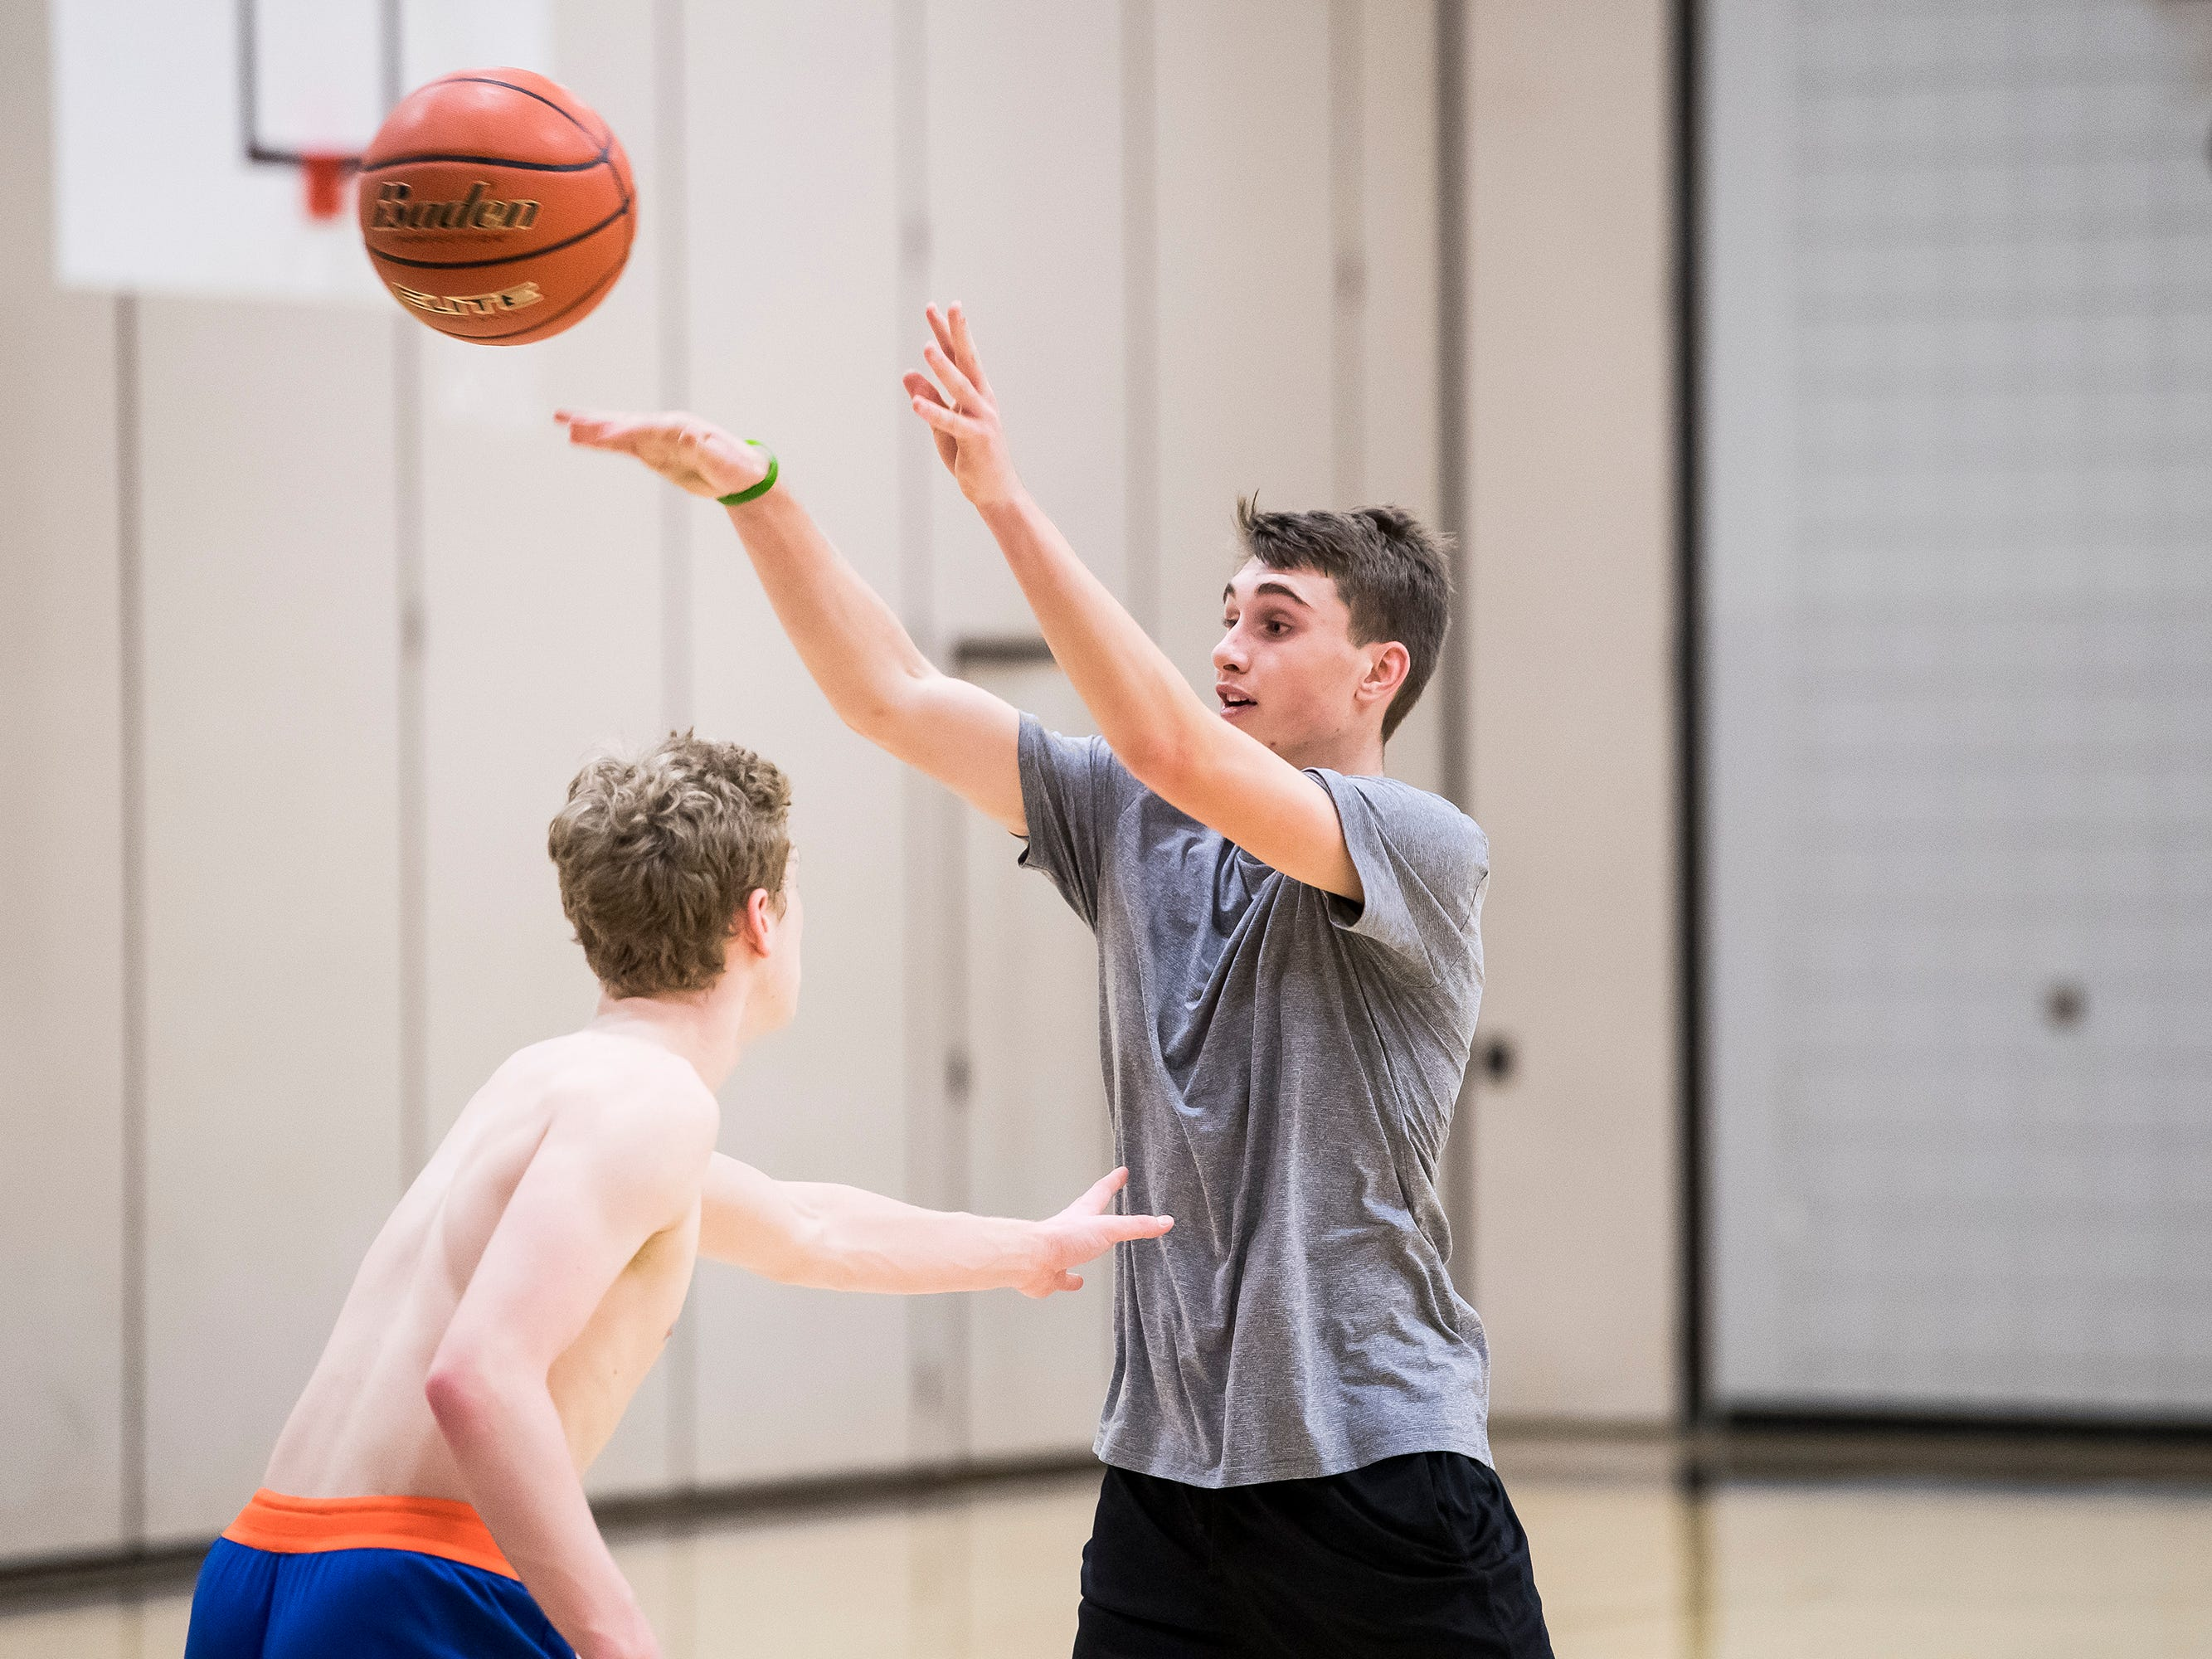 South Western's Angelo Alascio passes the ball during the first official day of winter sports practice on Friday, November 16, 2018.